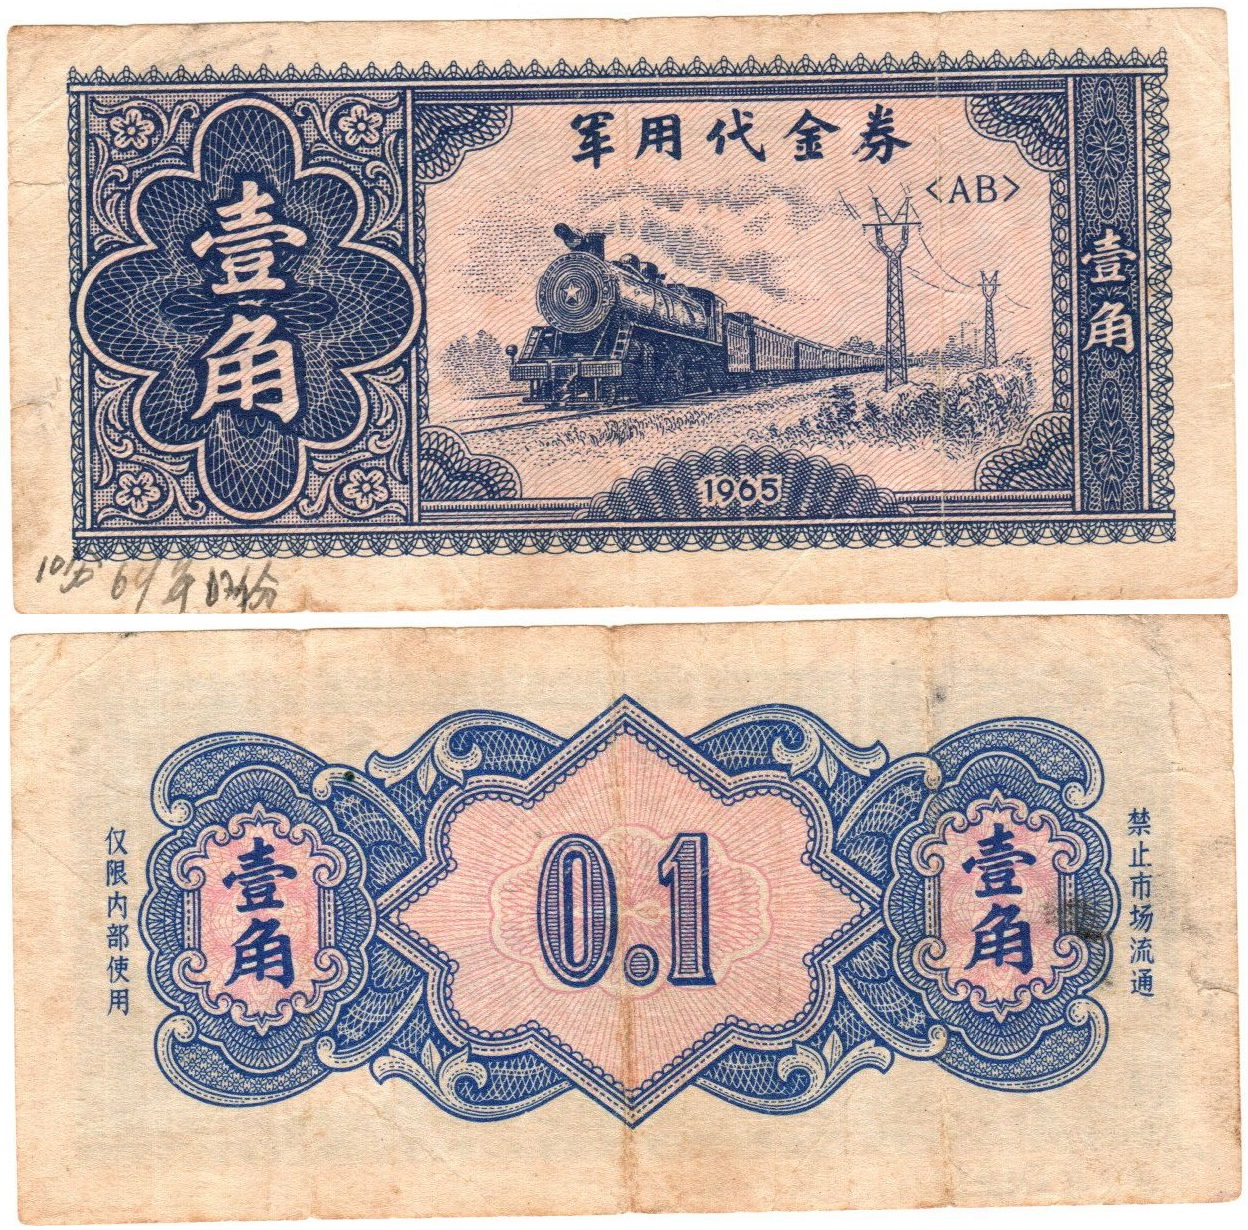 H0016, China Military Banknote, 10 Cent, during Vietnam War, 1965 Rare